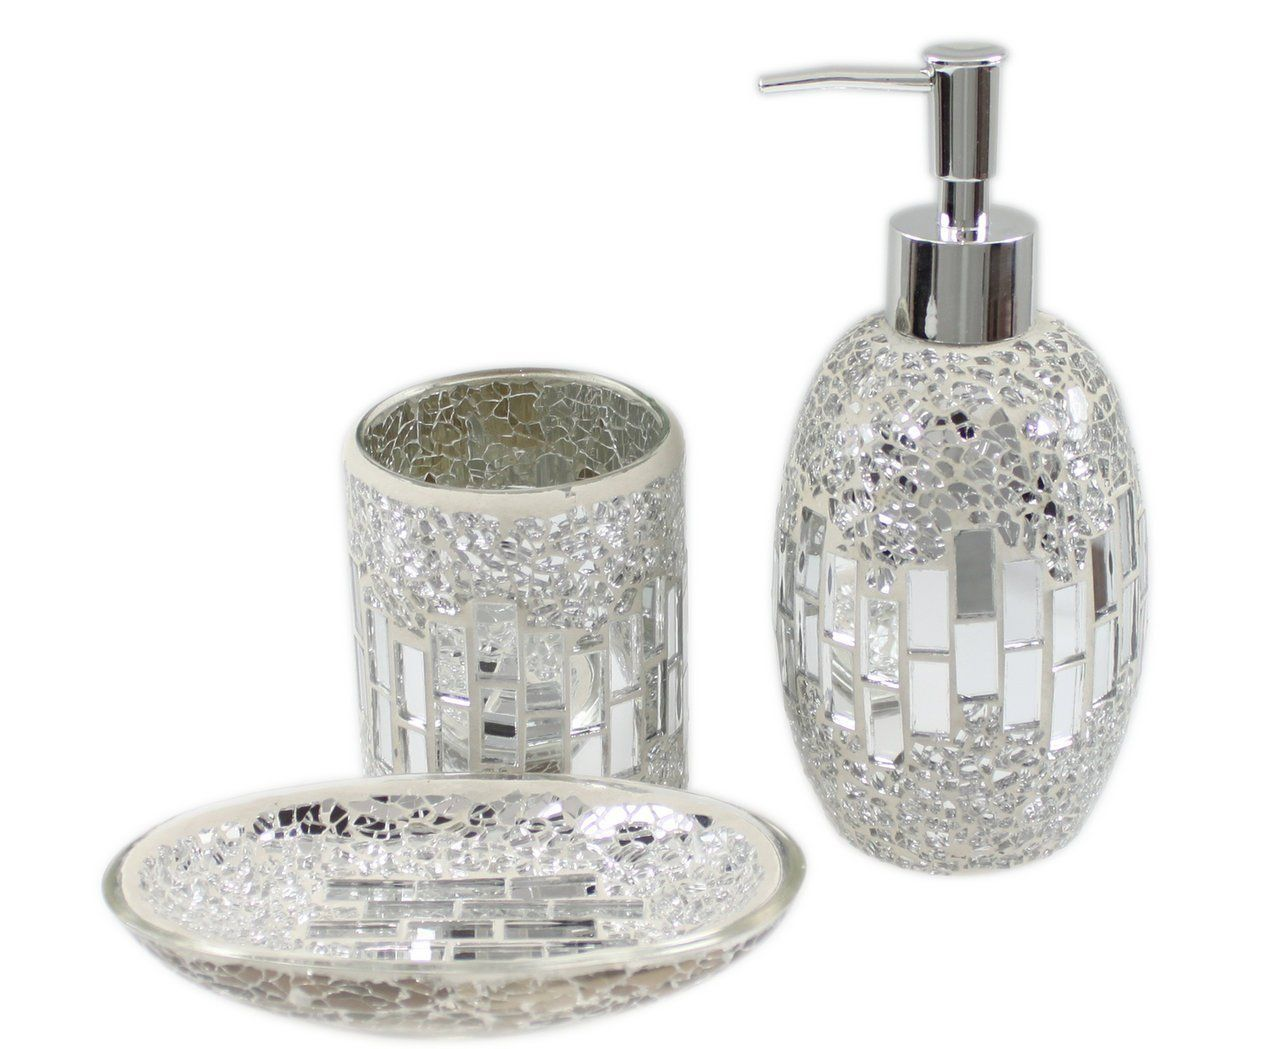 Silver Mosaic Crackled Glass Mirror Tile Bathroom Accessory Set Decor In Home Furniture DIY Bath Soap Dishes Dispensers